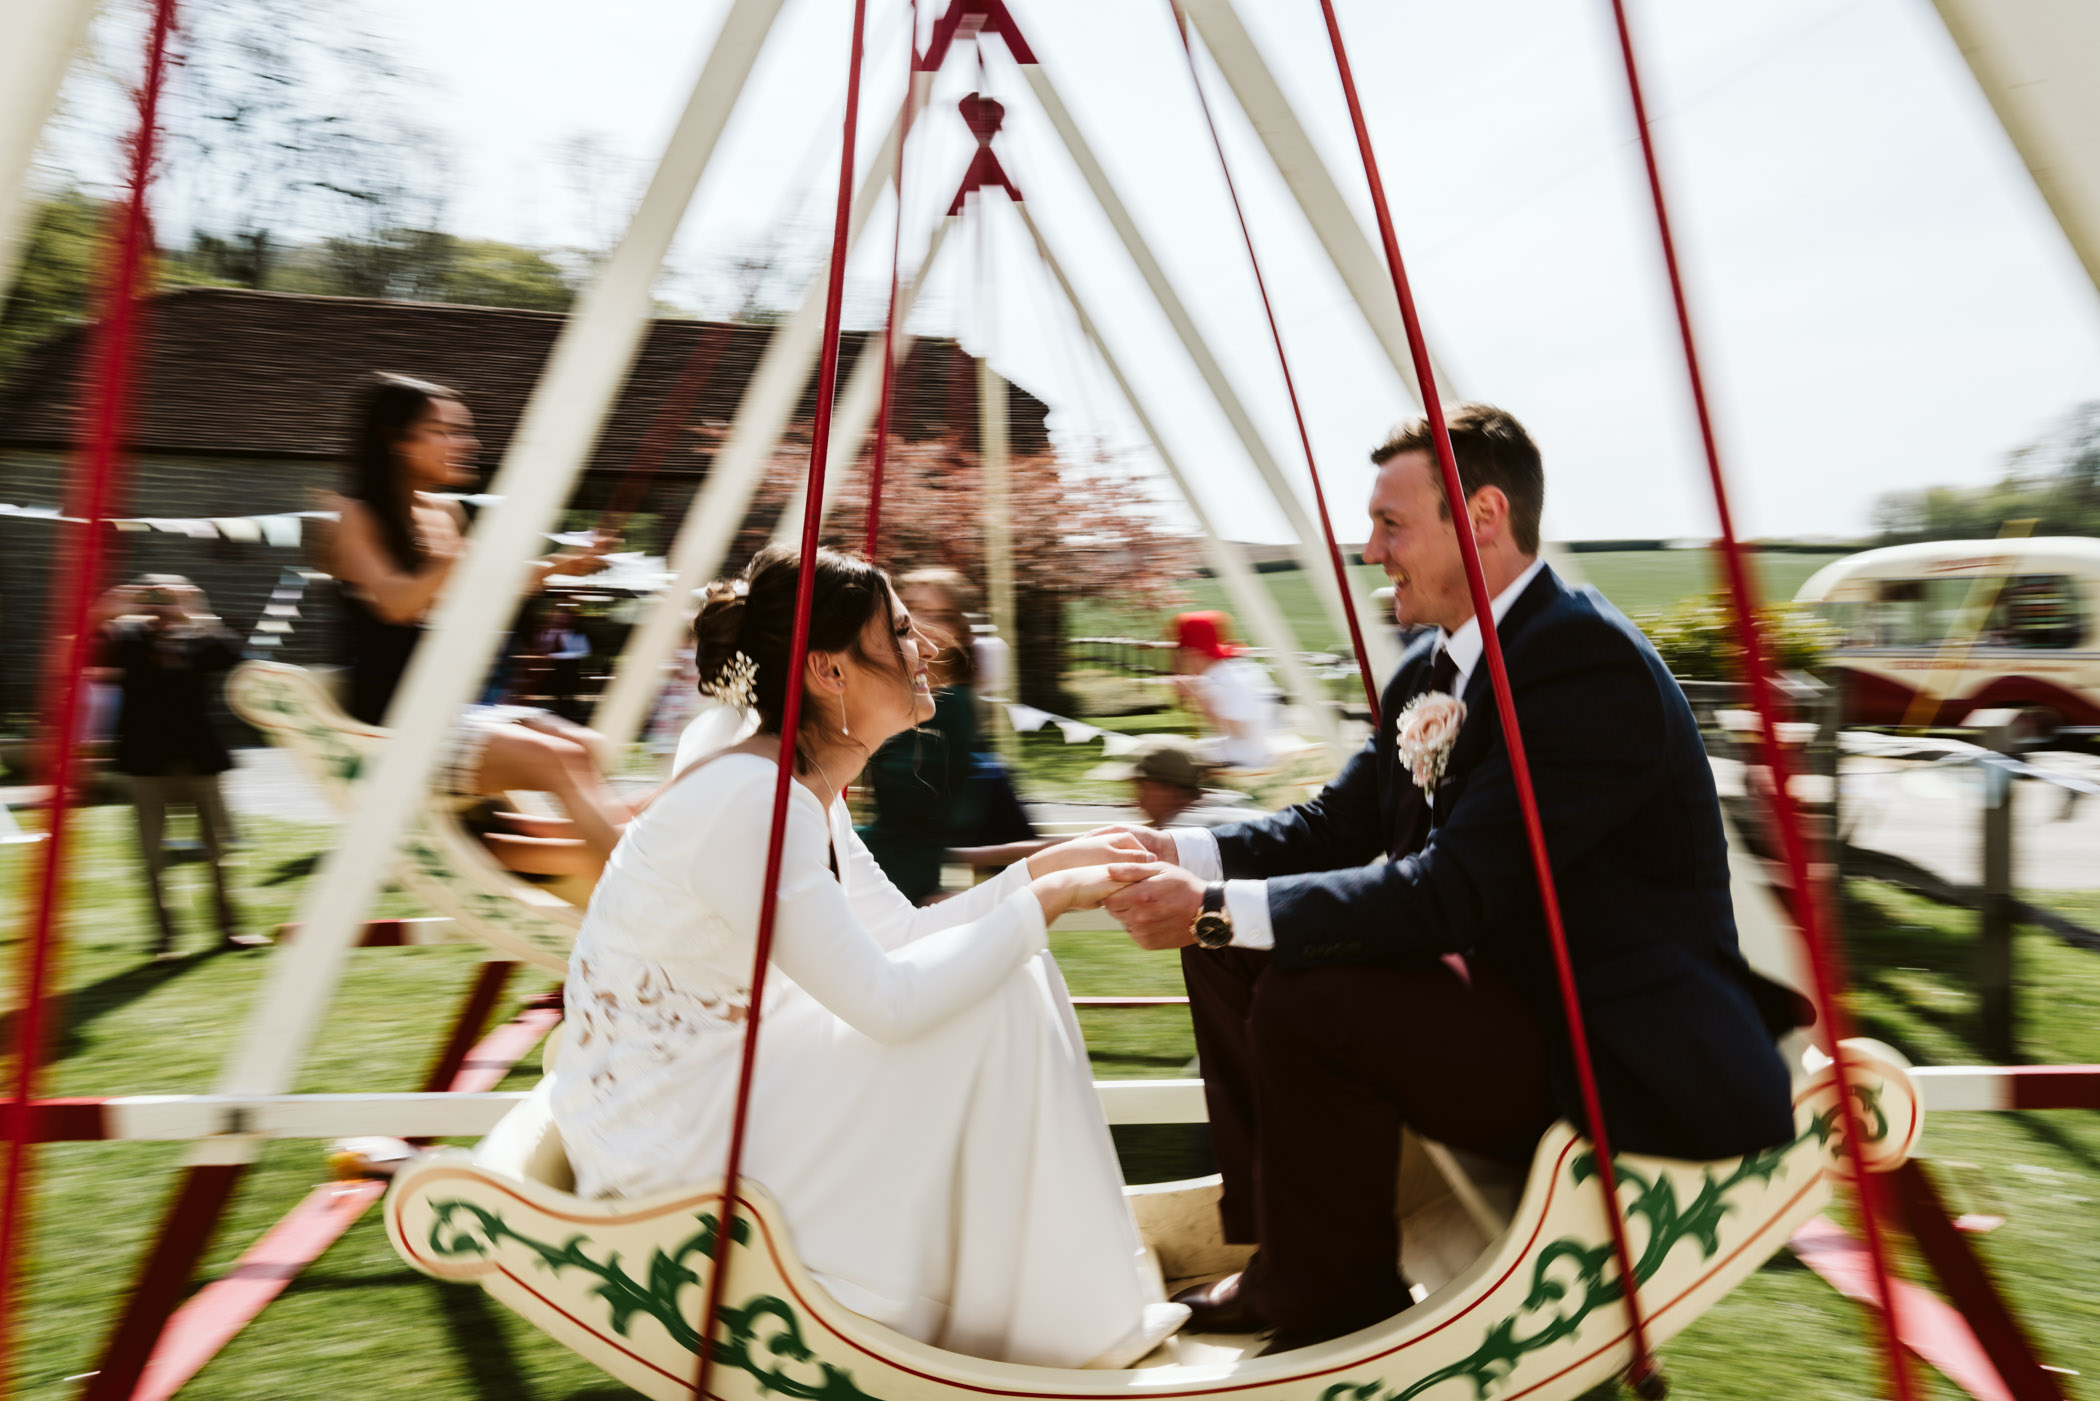 I slowed my shutter right down here to create a sense of movement - Vintage swings at weddings